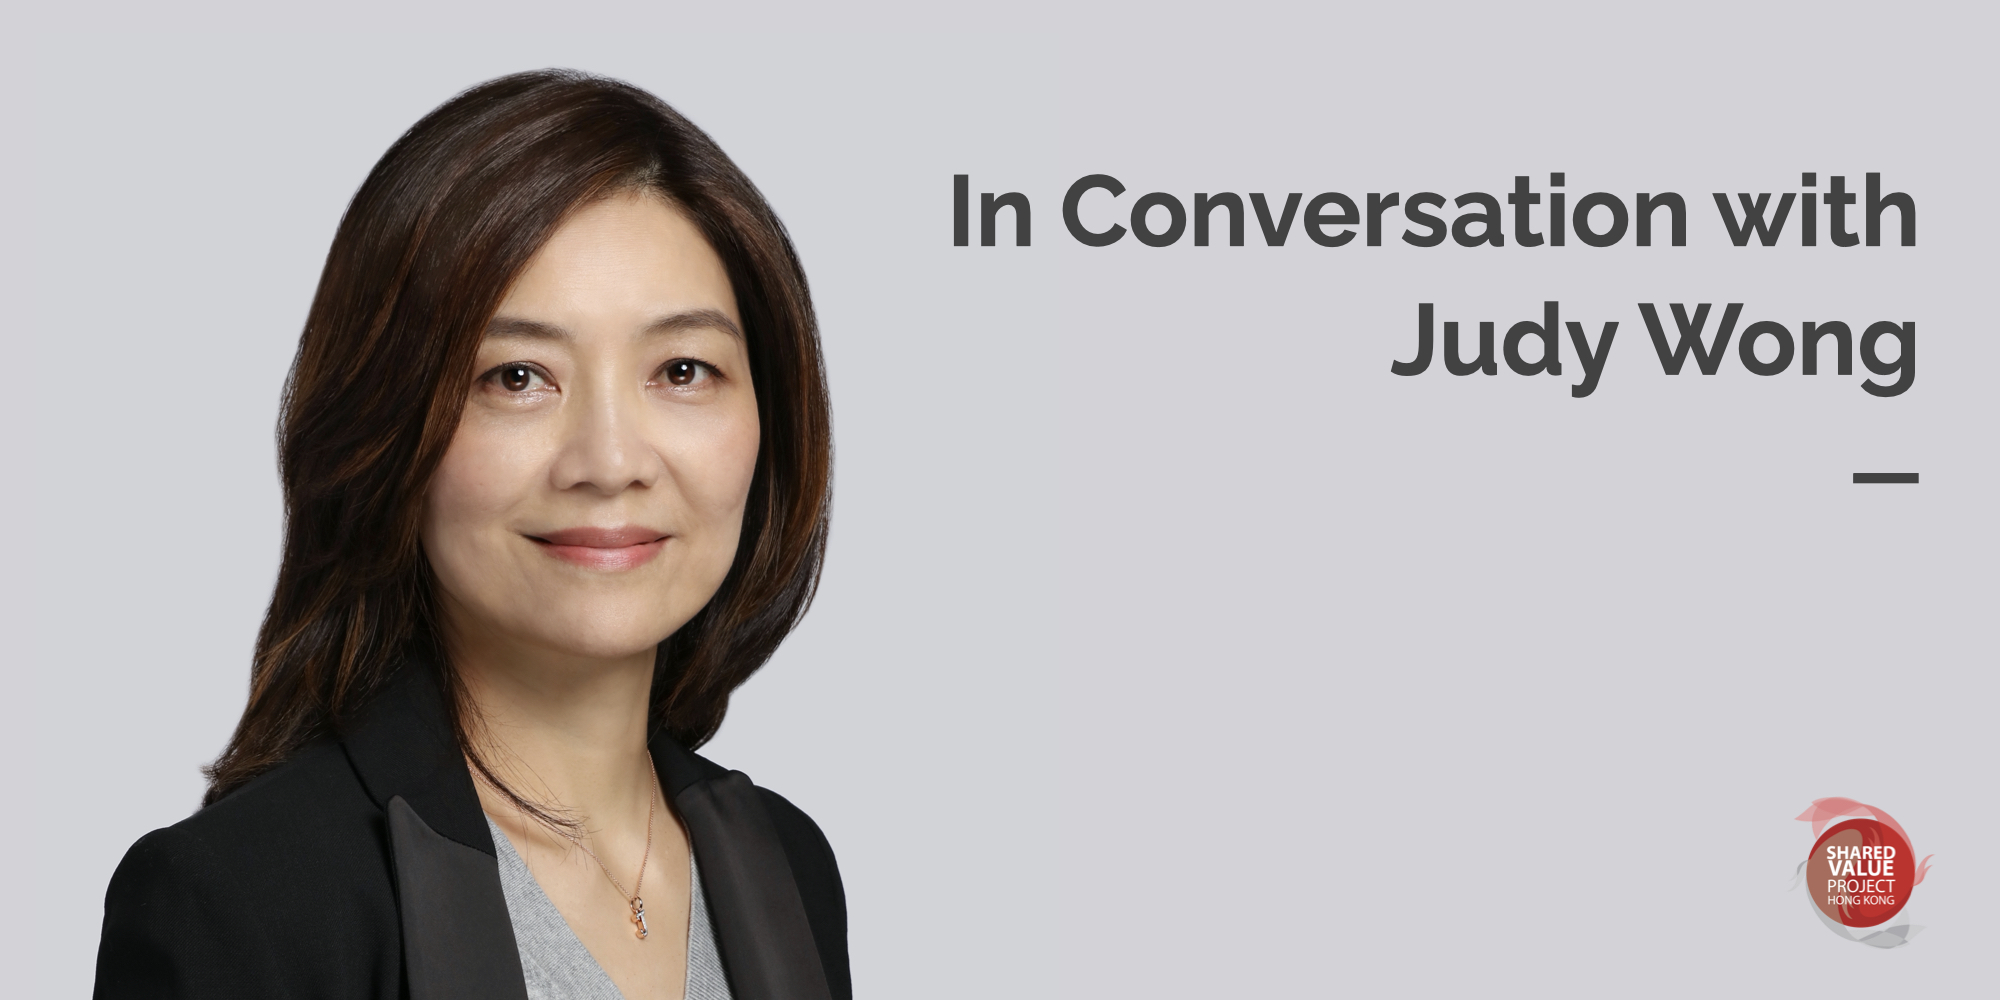 In Conversation with Judy Wong